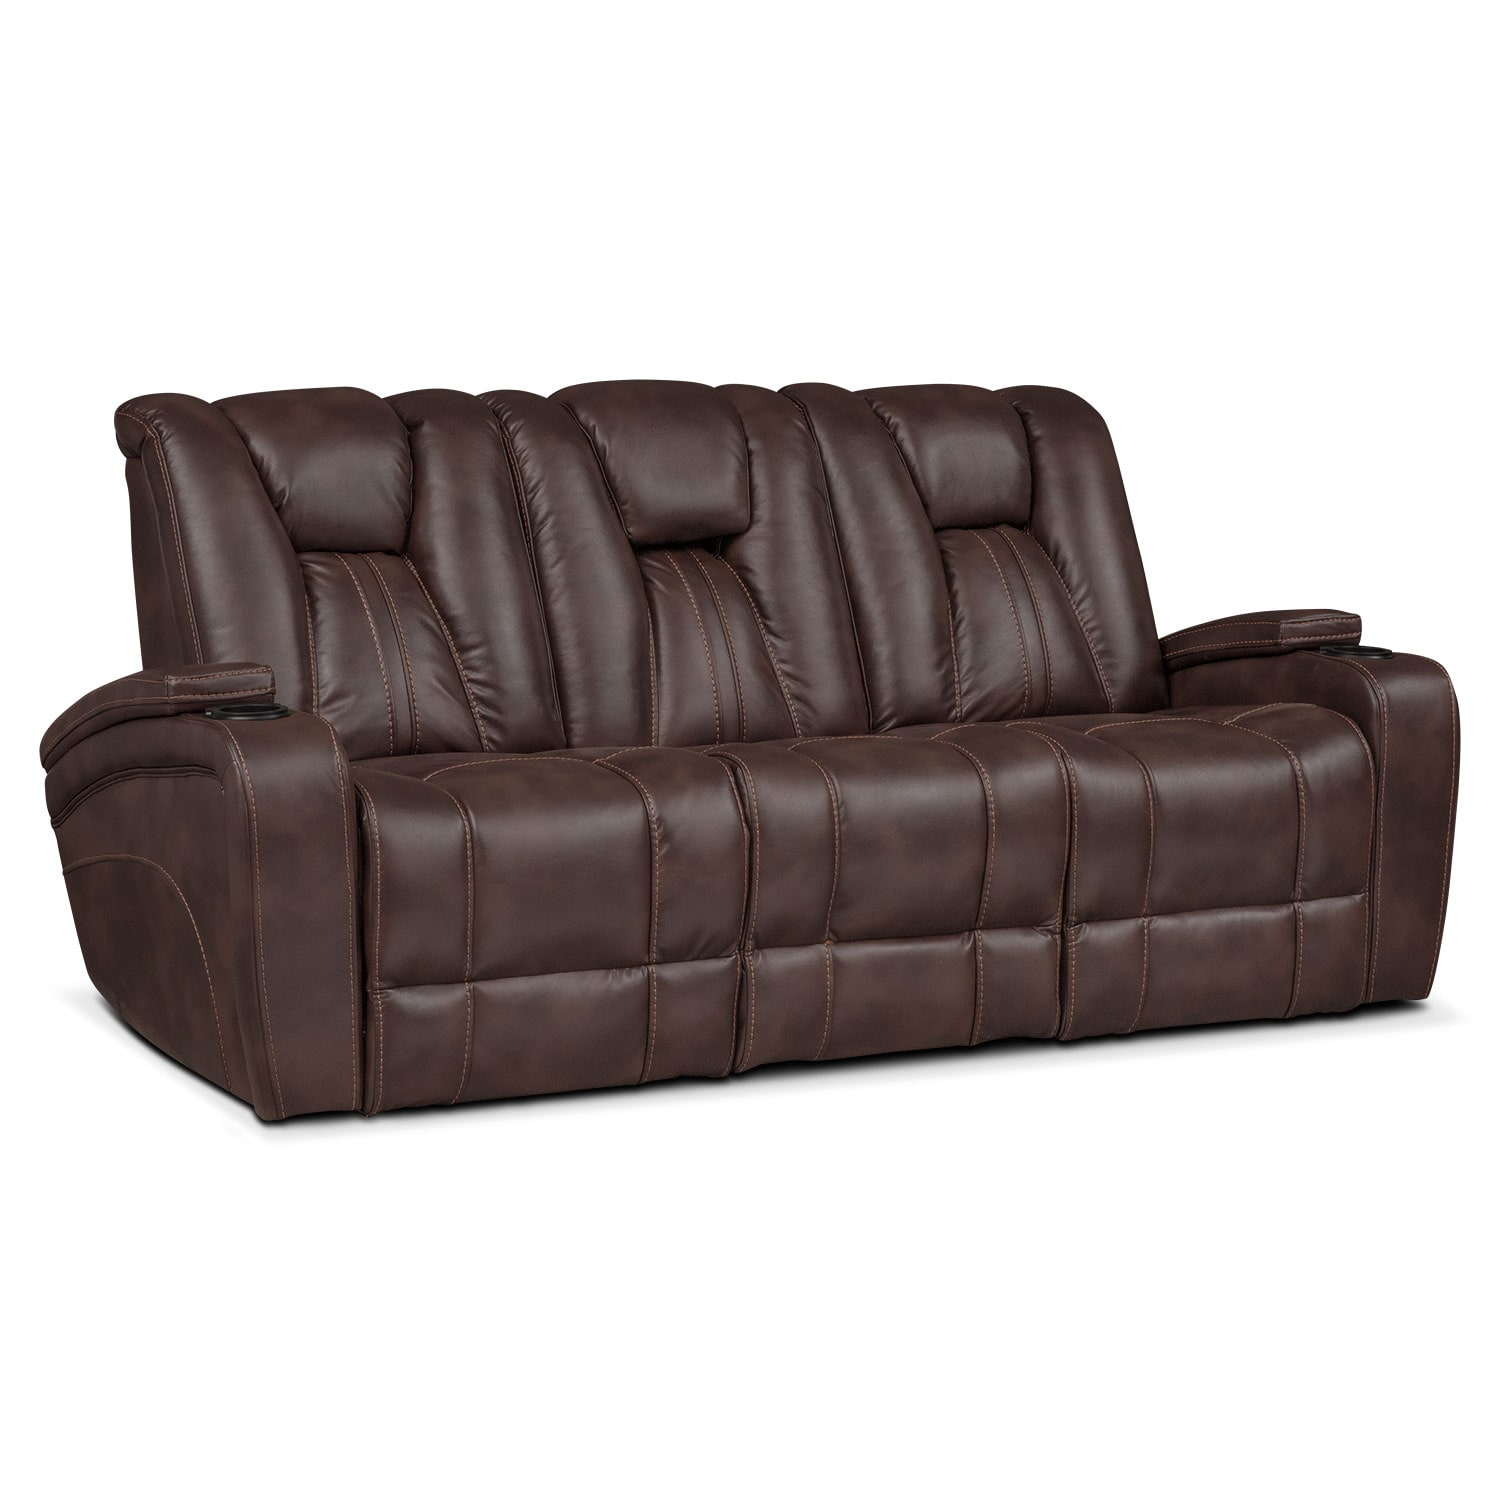 Exceptionnel Pulsar Power Reclining Sofa, Power Reclining Loveseat And Power Recliner  Set   Brown